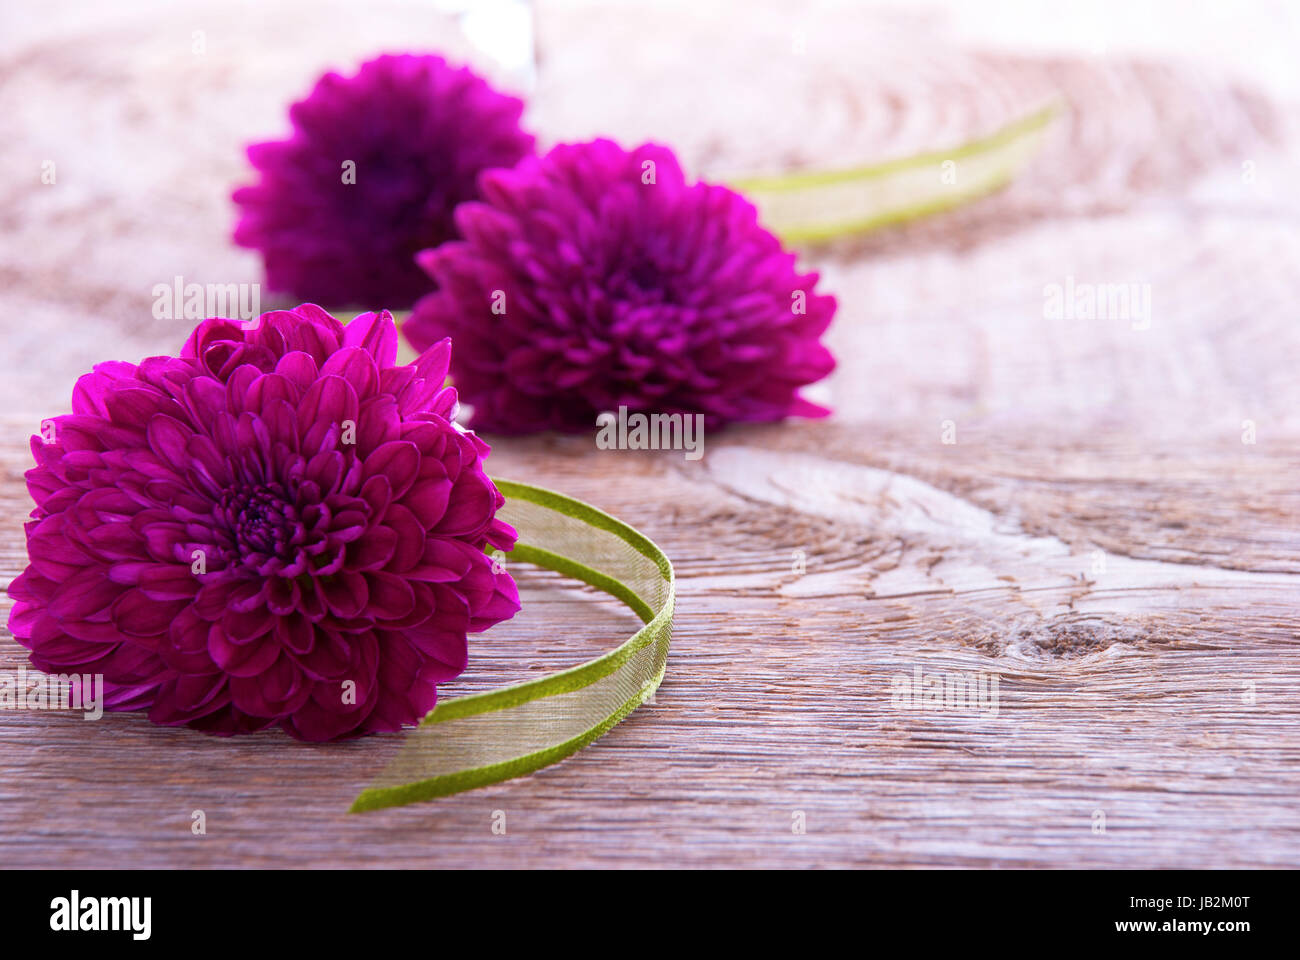 Background with Purple Blossoms and Green Ribbon on Wood with Copy Space - Stock Image